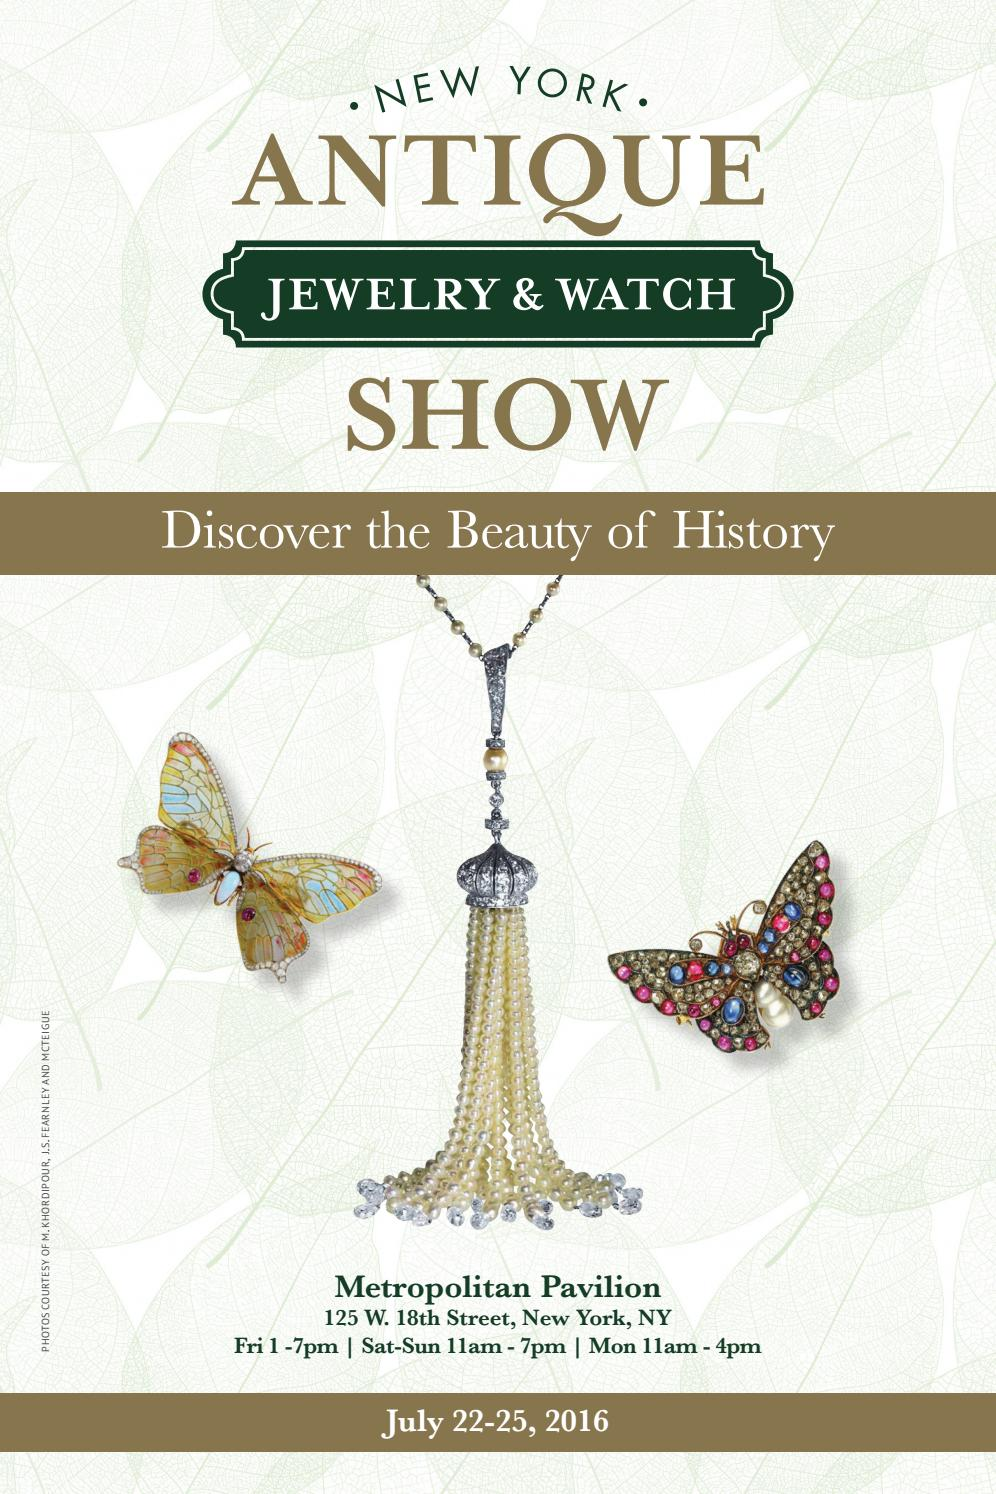 The New York Antique Jewelry Watch Show 2018 Directory